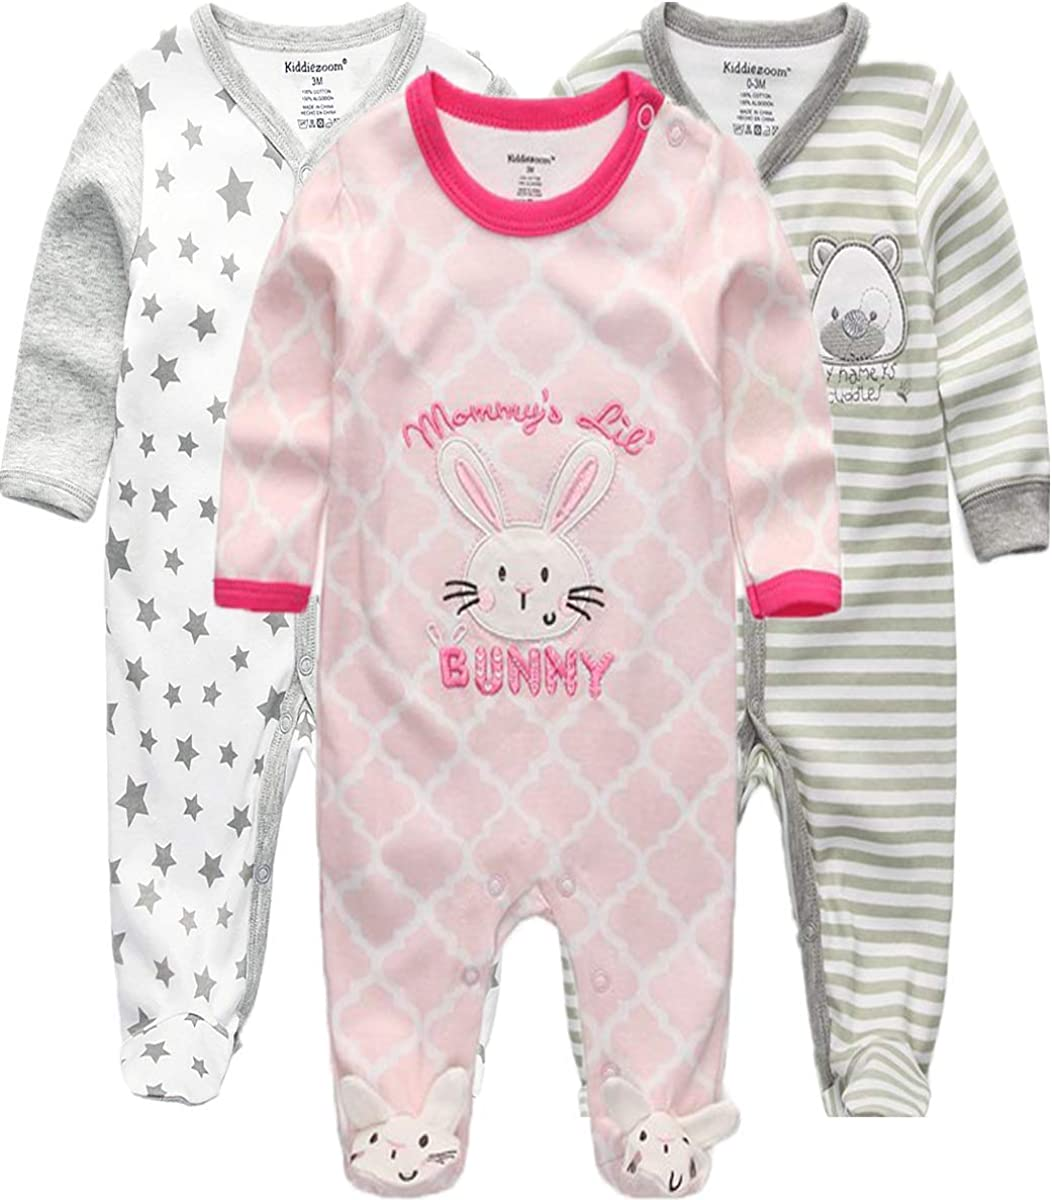 Kiddiezoom Baby and Toddler Boys 3-Pack Snug Fit Footed Cotton Pajamas